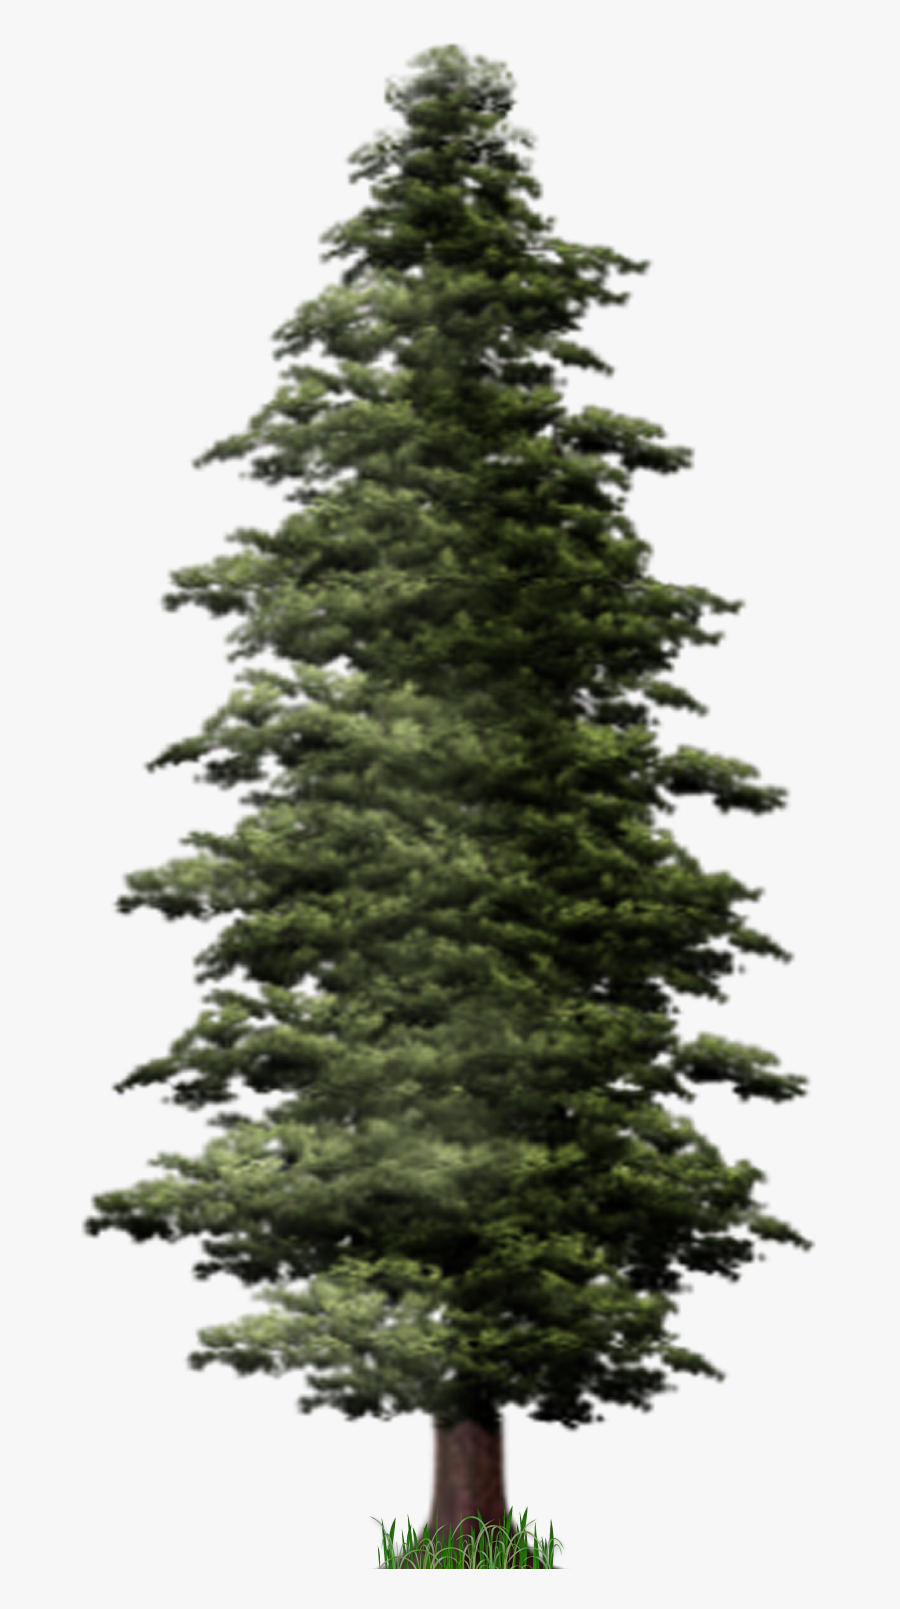 Tall Pine Tree Silhouette Download - Pine Trees Hd Png, Transparent Clipart